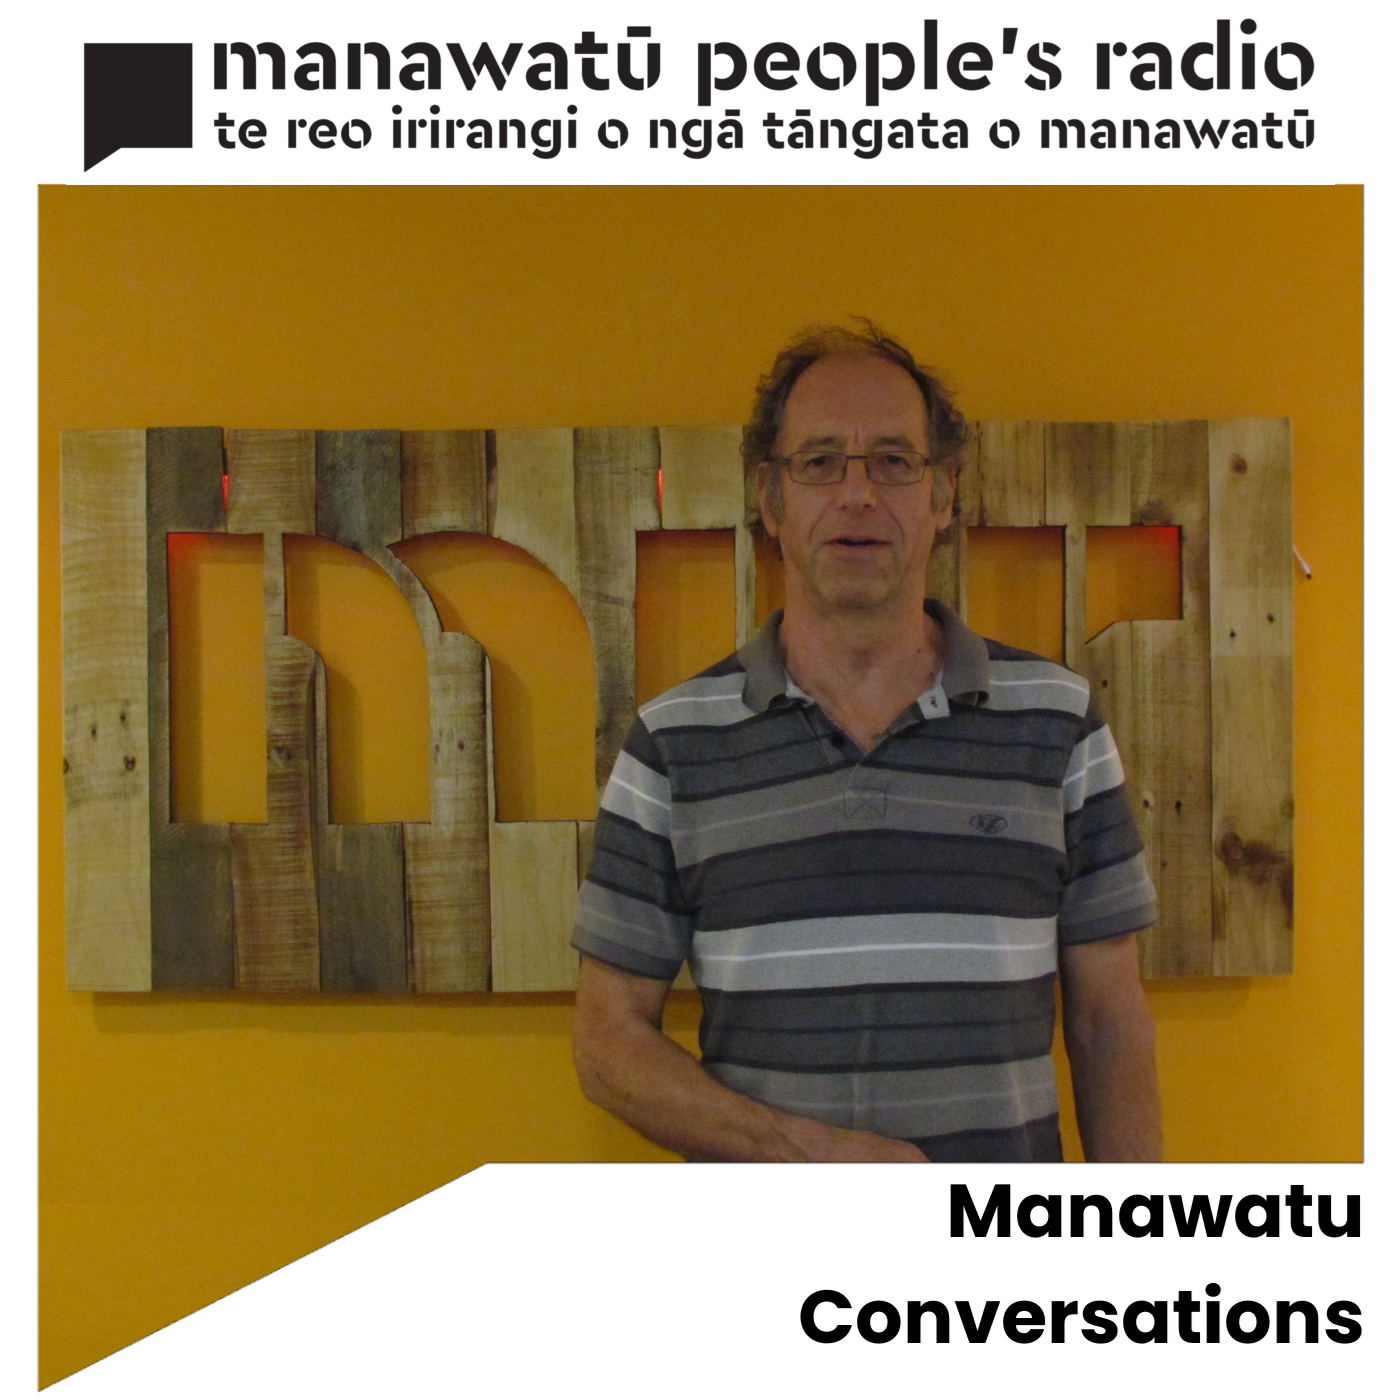 Manawatu Conversations-19-11-2019 - Episode 83